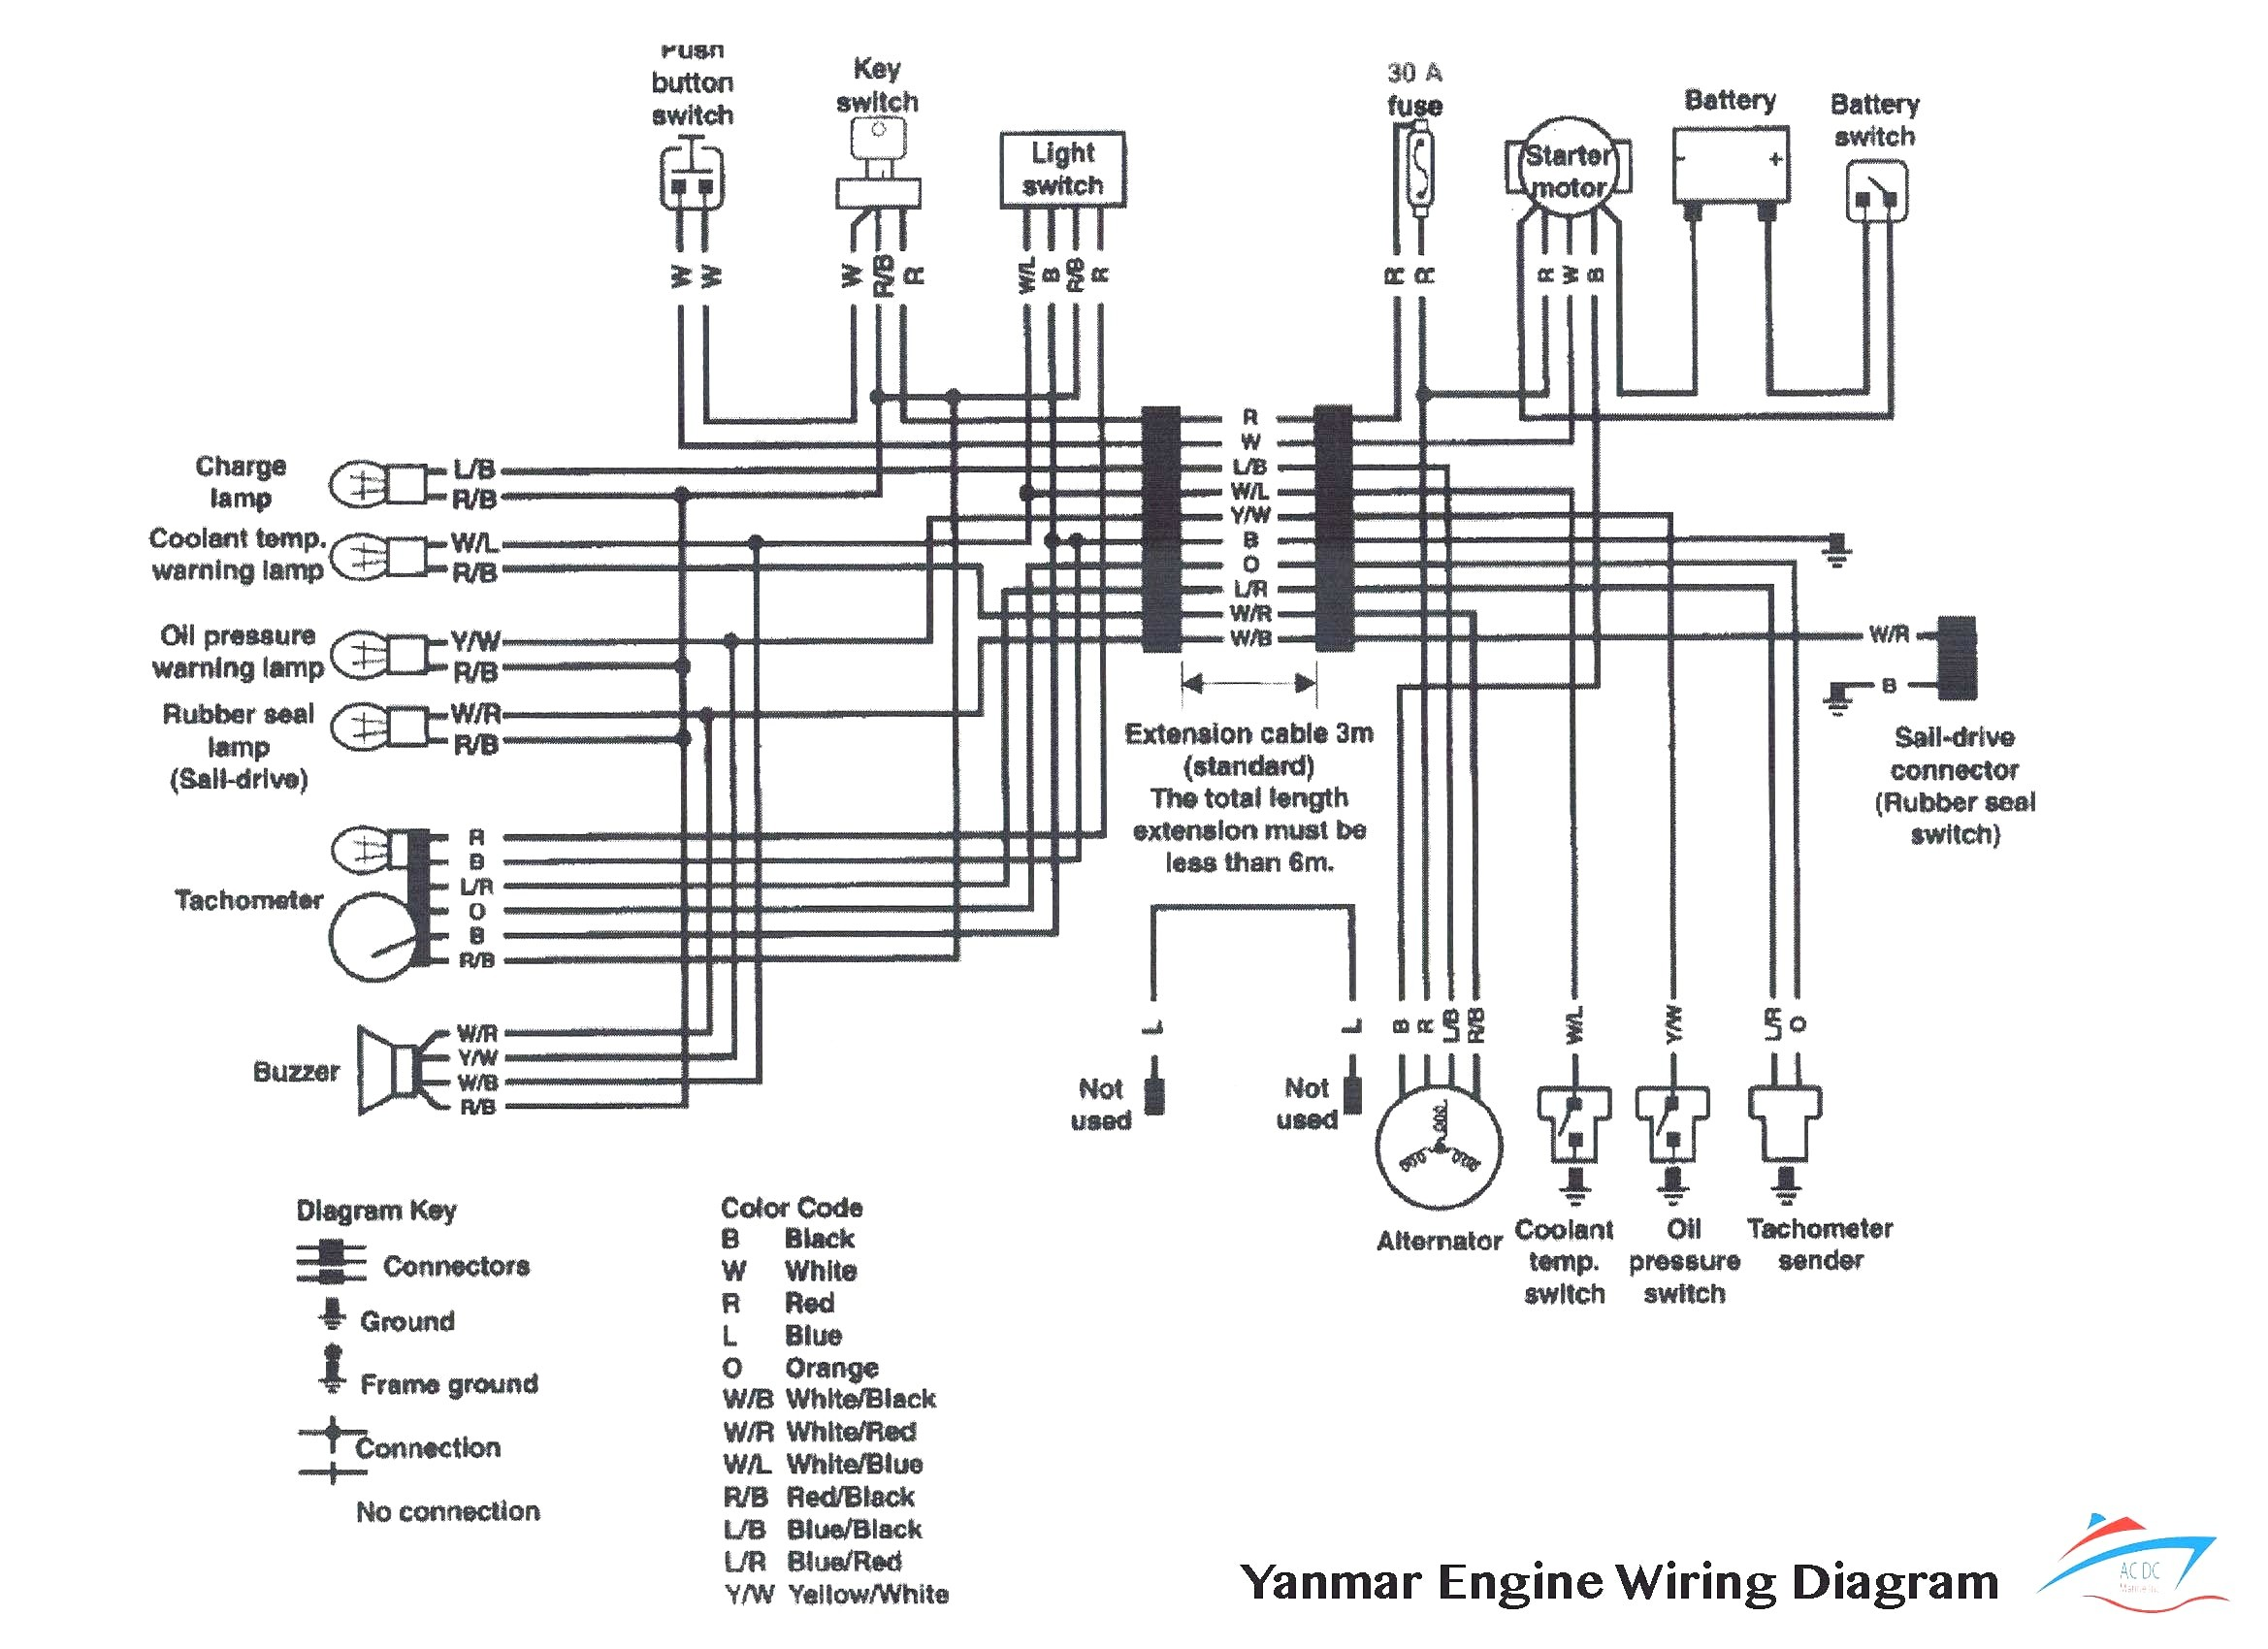 Autometer Pyrometer Wiring Diagram Vdo Gauges Wiring Diagrams In B C with Notes Jpg Simple Diagram Of Autometer Pyrometer Wiring Diagram